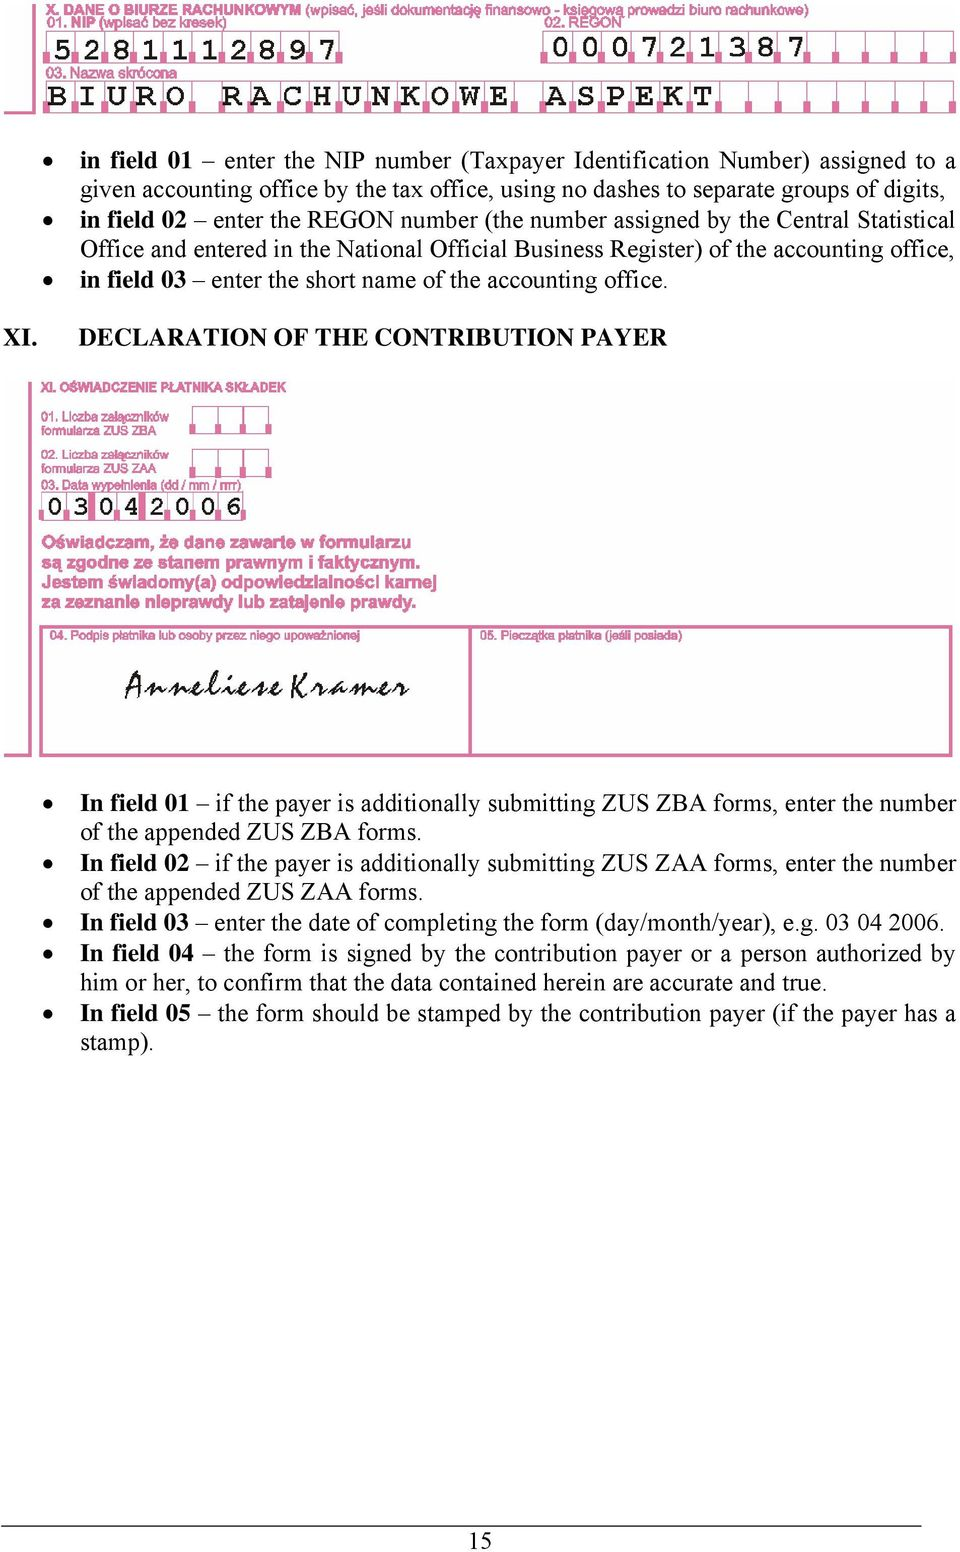 office. XI. DECLARATION OF THE CONTRIBUTION PAYER In field 01 if the payer is additionally submitting ZUS ZBA forms, enter the number of the appended ZUS ZBA forms.